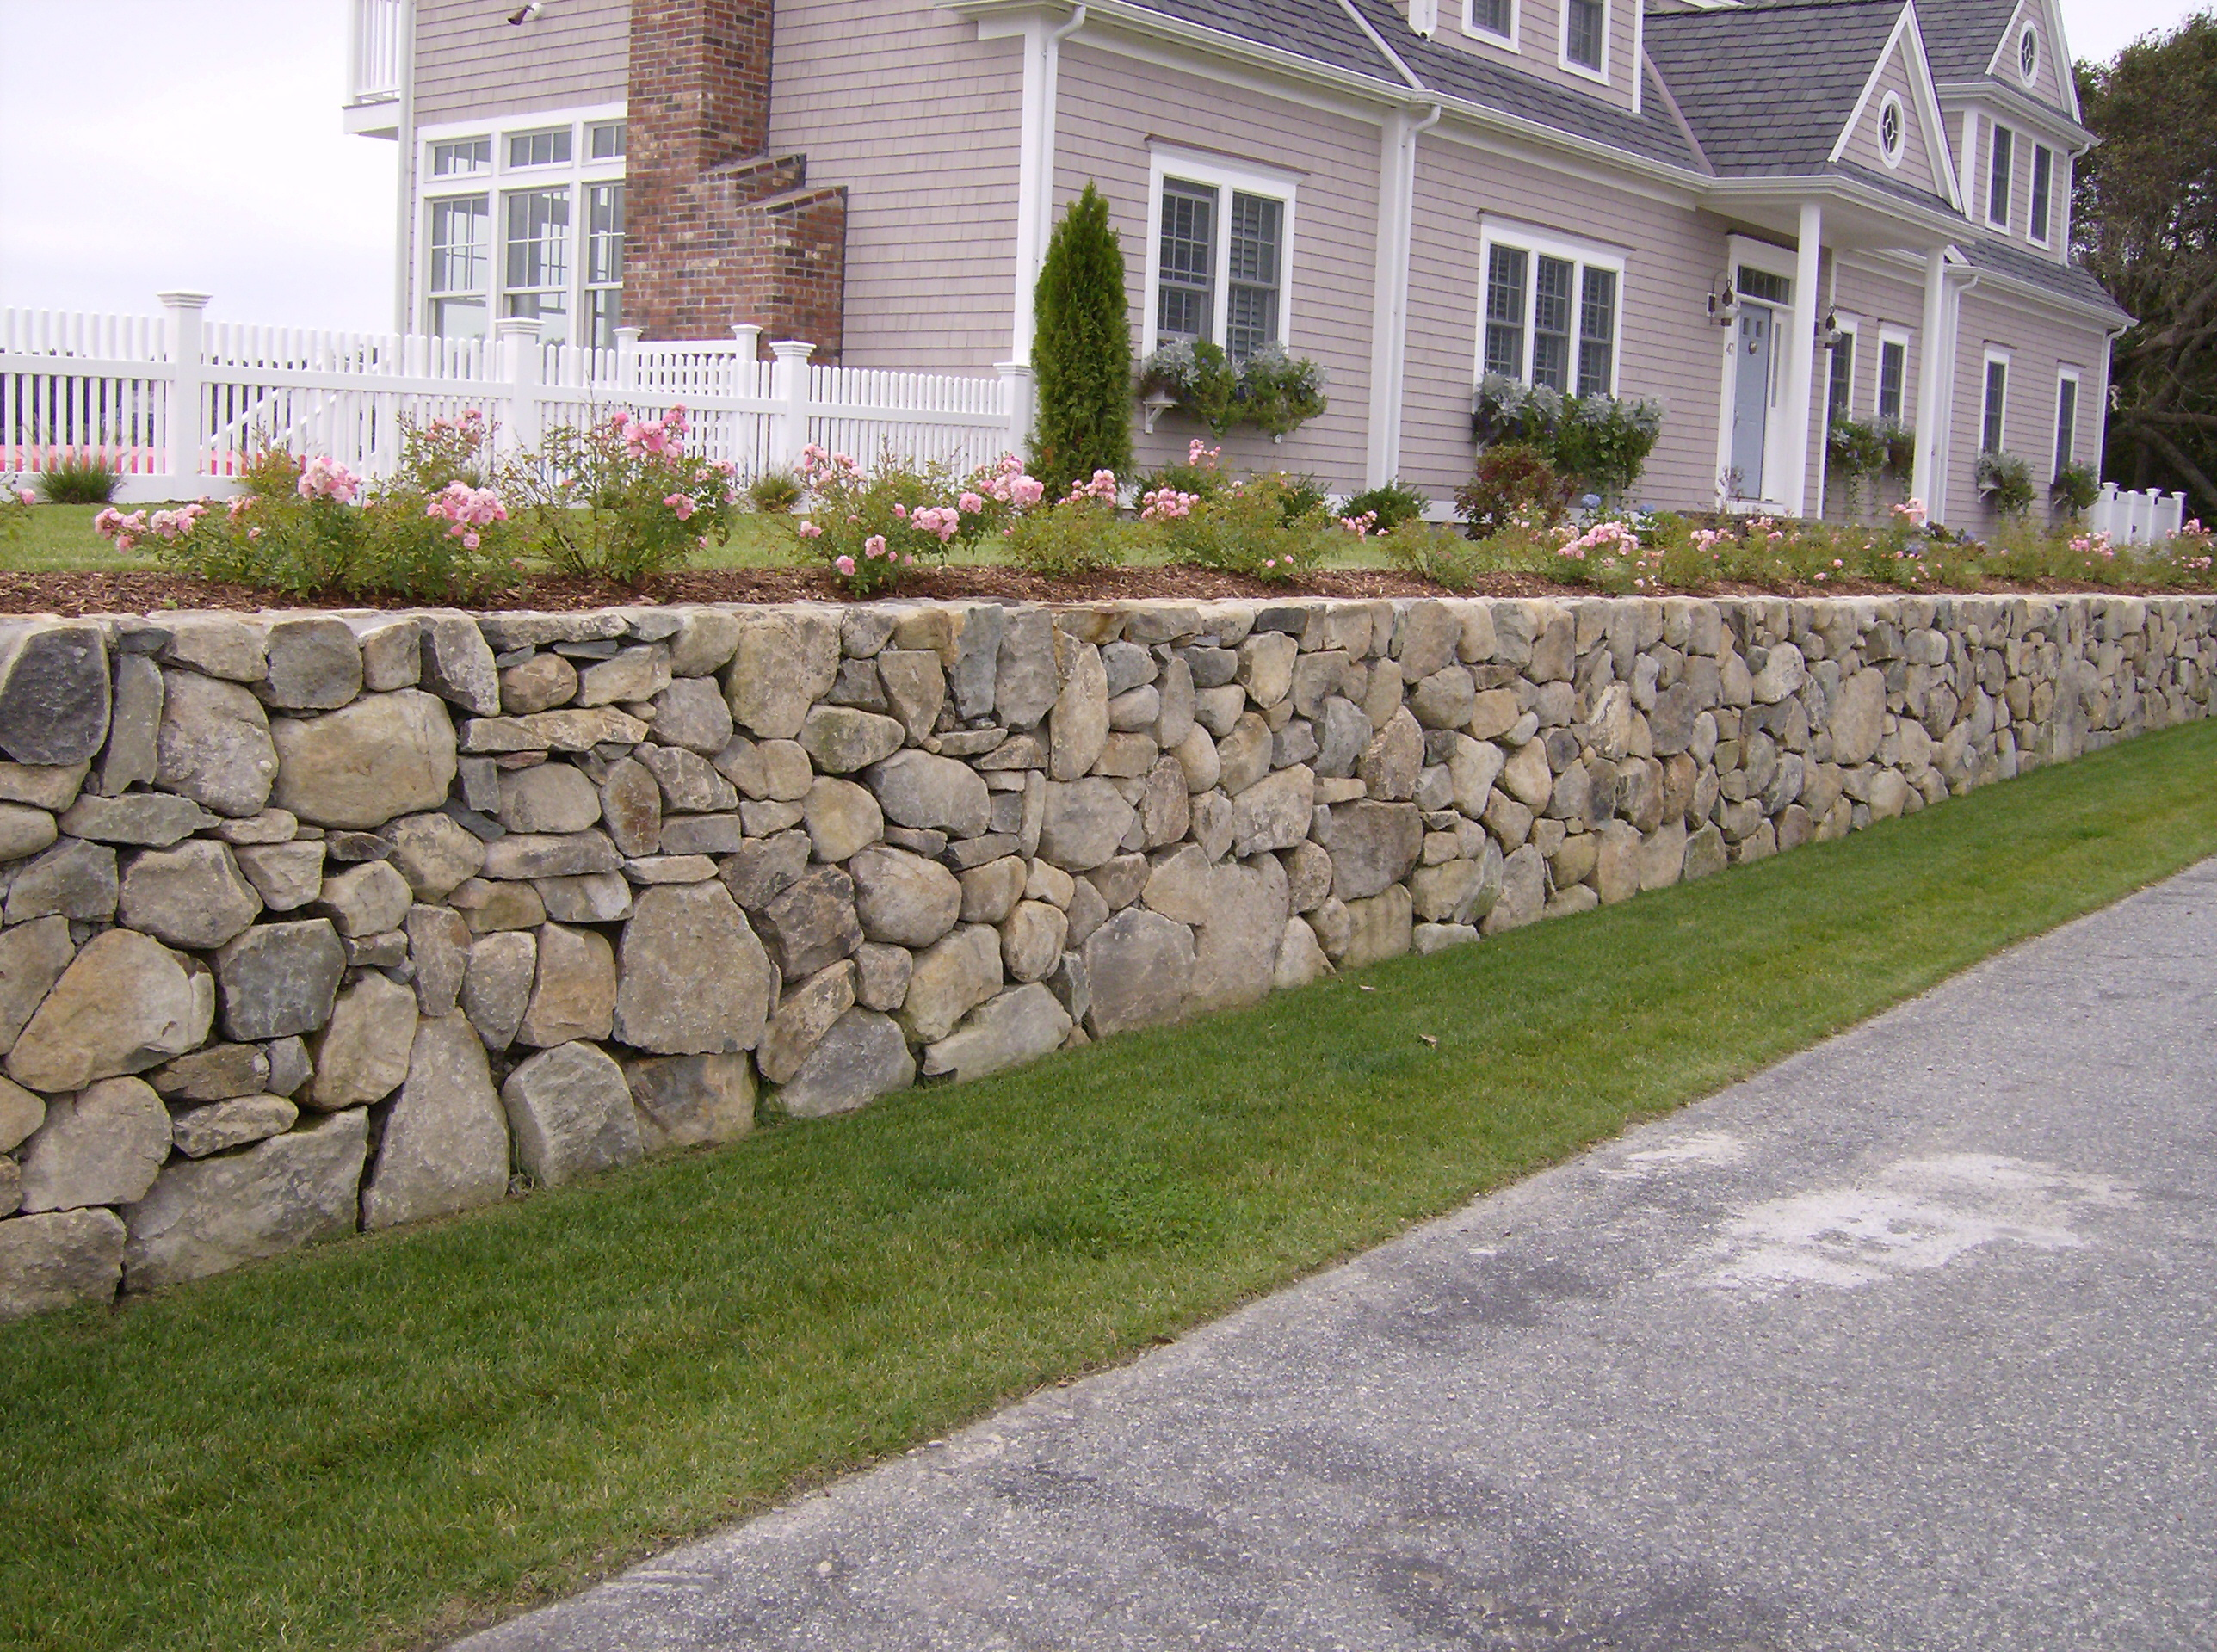 1000 images about retaining wall inspirations on pinterest for Landscape retaining wall design